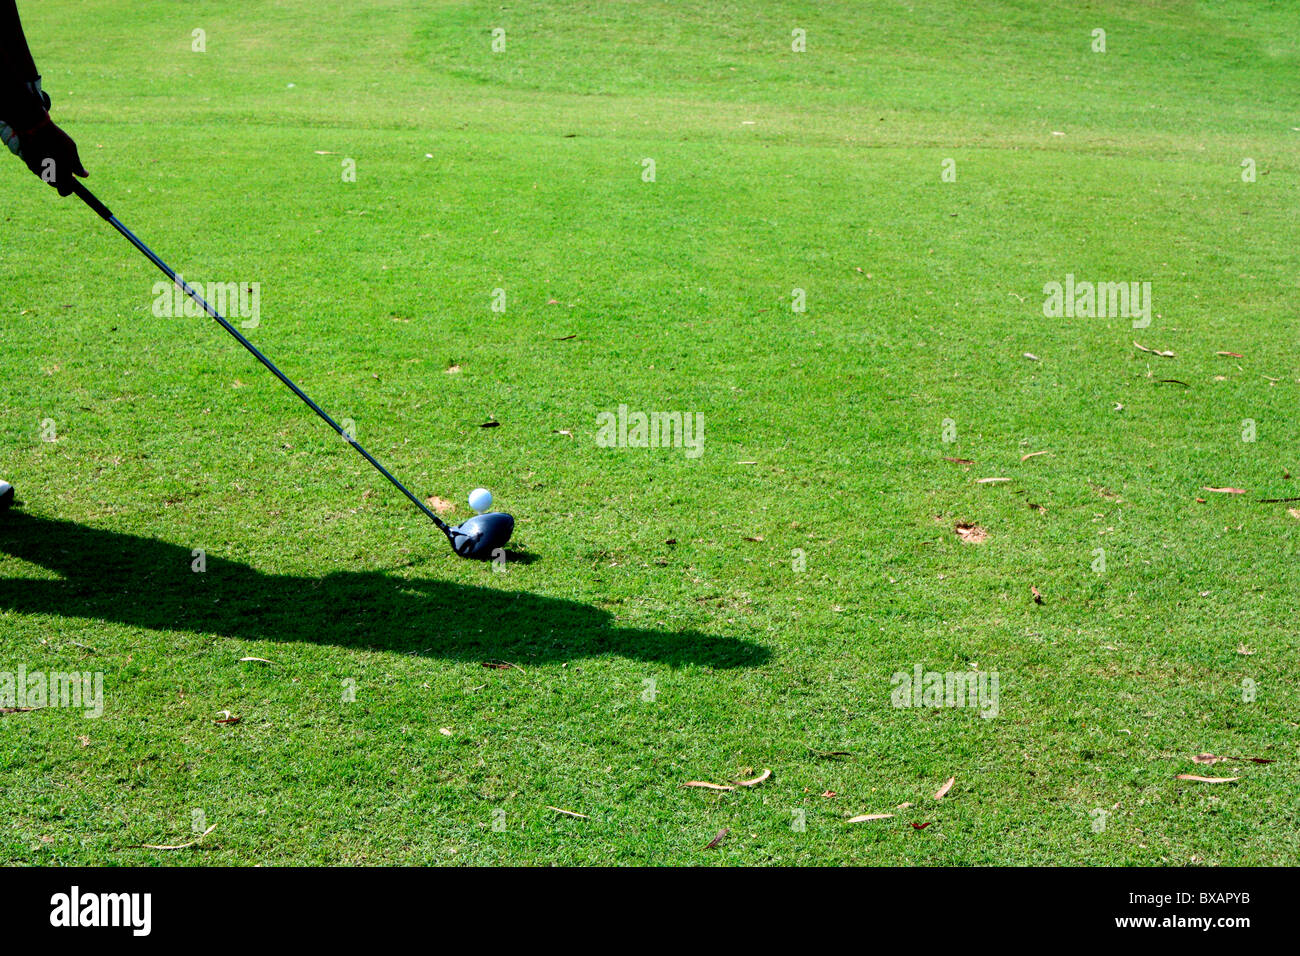 A golfer tee offing with a driver - Stock Image